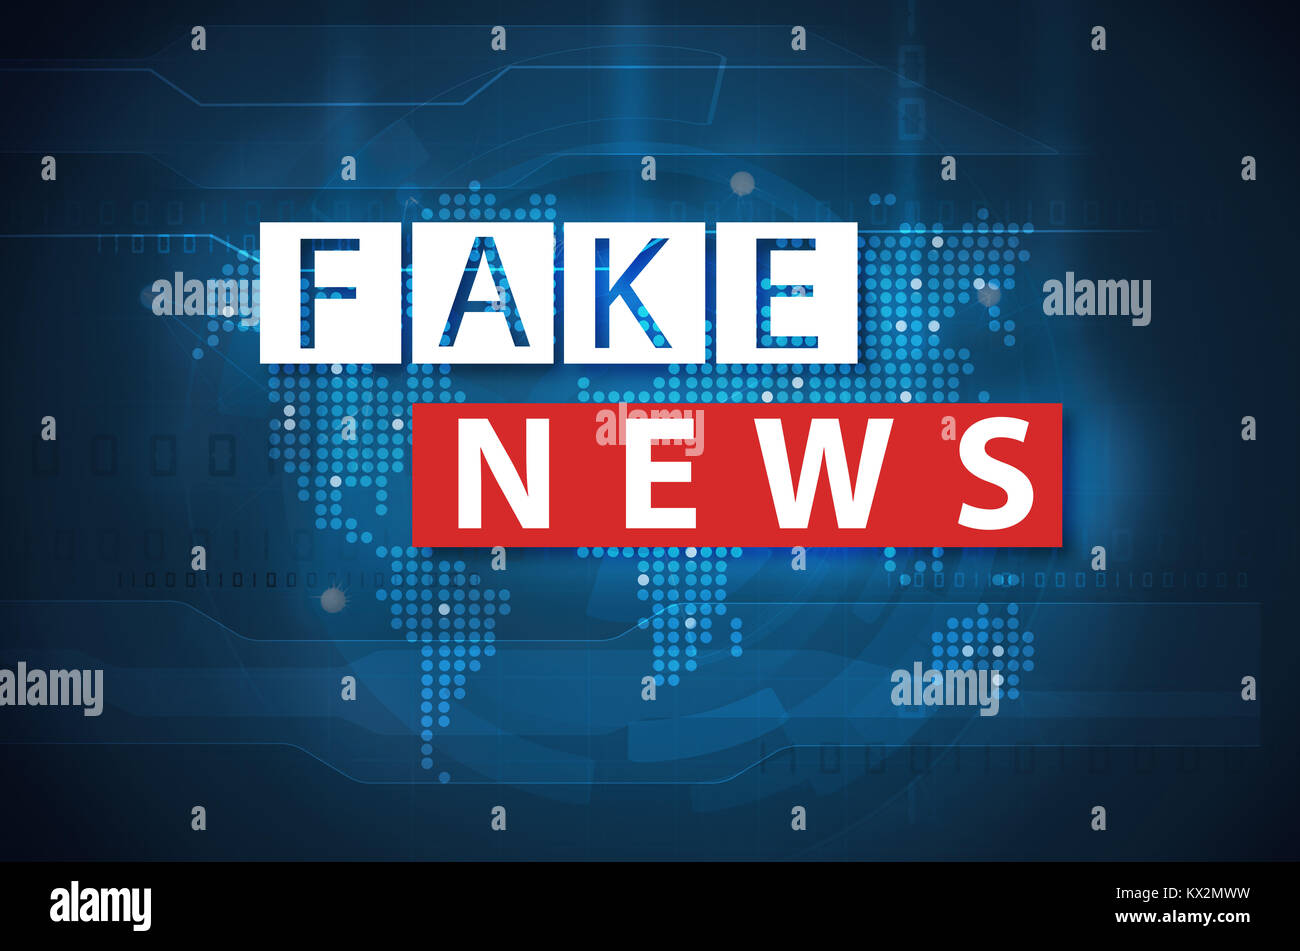 fake news and misinformation concept - Stock Image